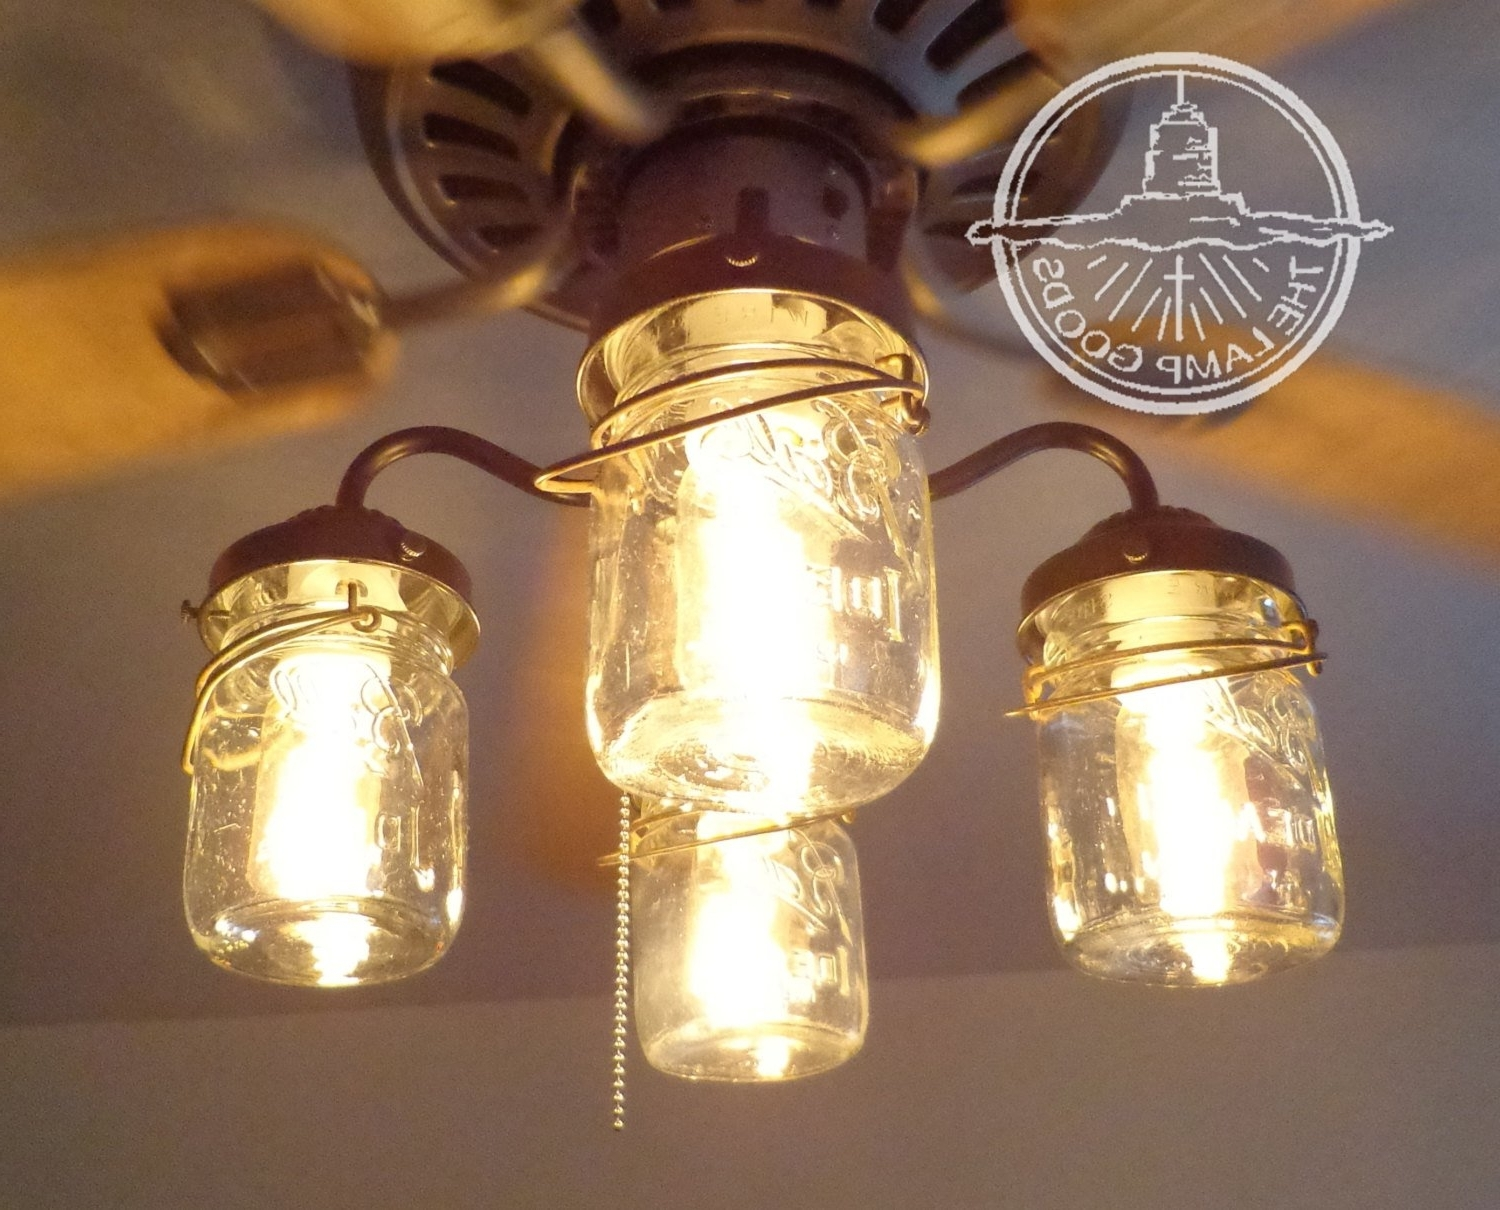 Outdoor Ceiling Fans With Mason Jar Lights Within Most Current Rustic Mason Jar Ceiling Fan Light Kit Only With Vintage Pints (View 17 of 20)